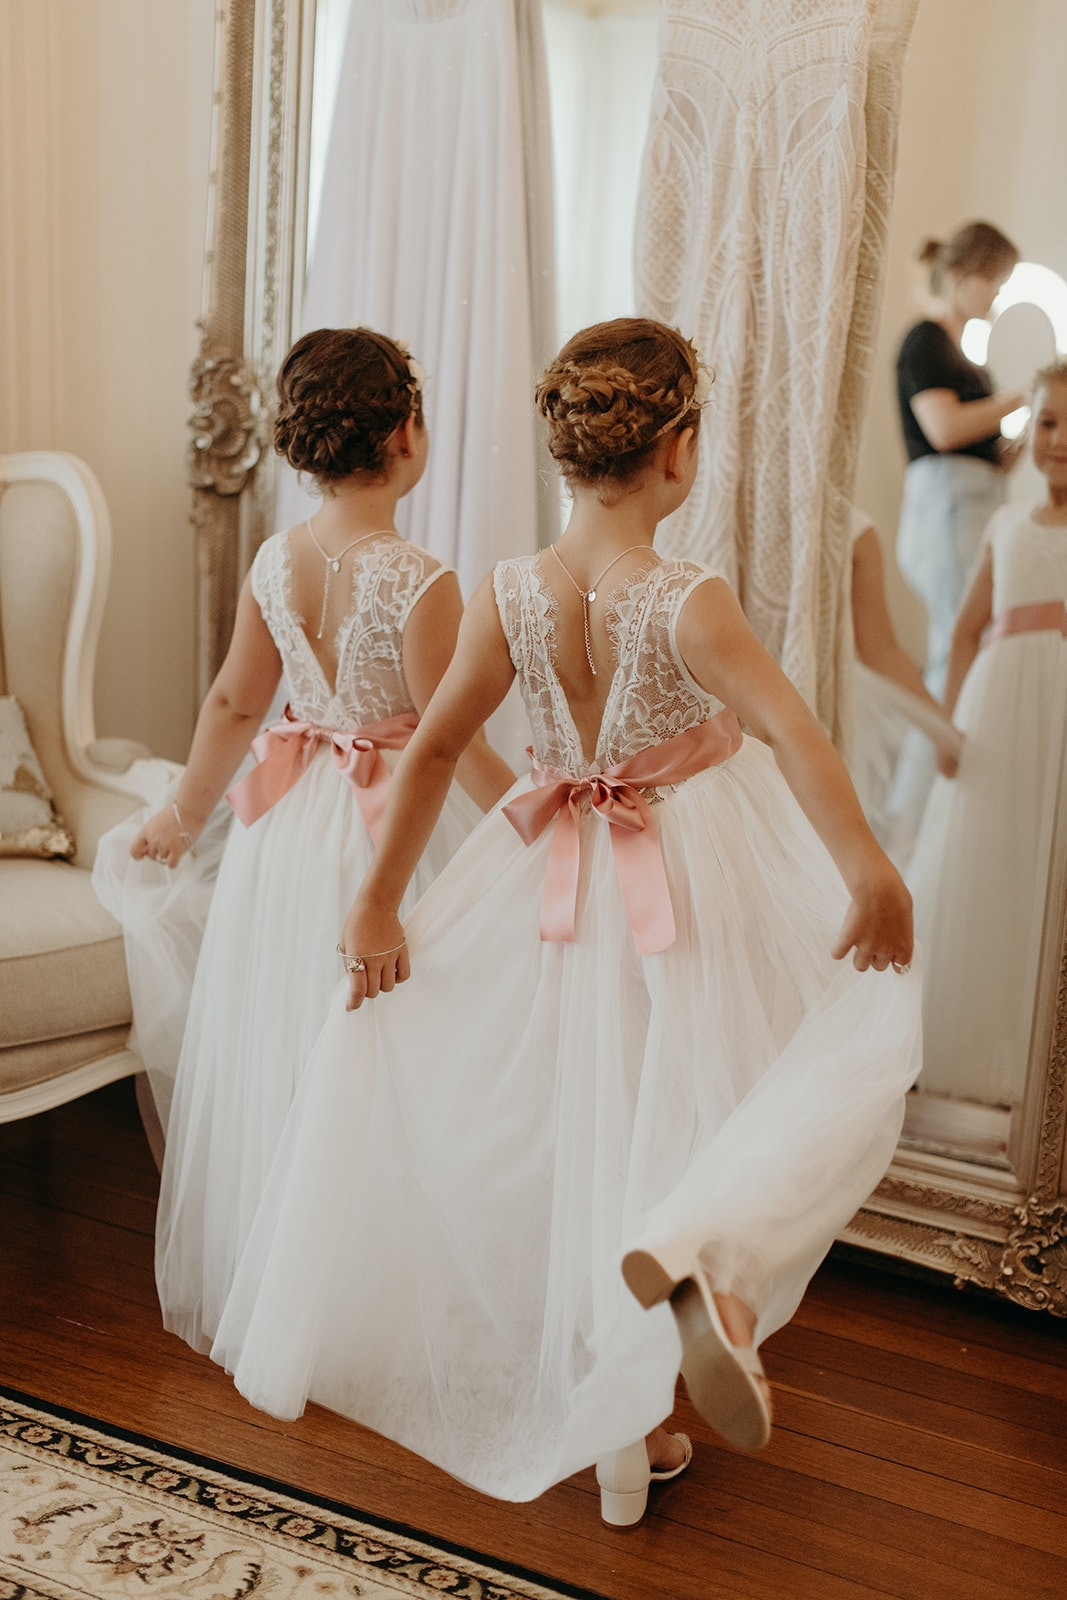 Bridesmaids standing in front of mirror